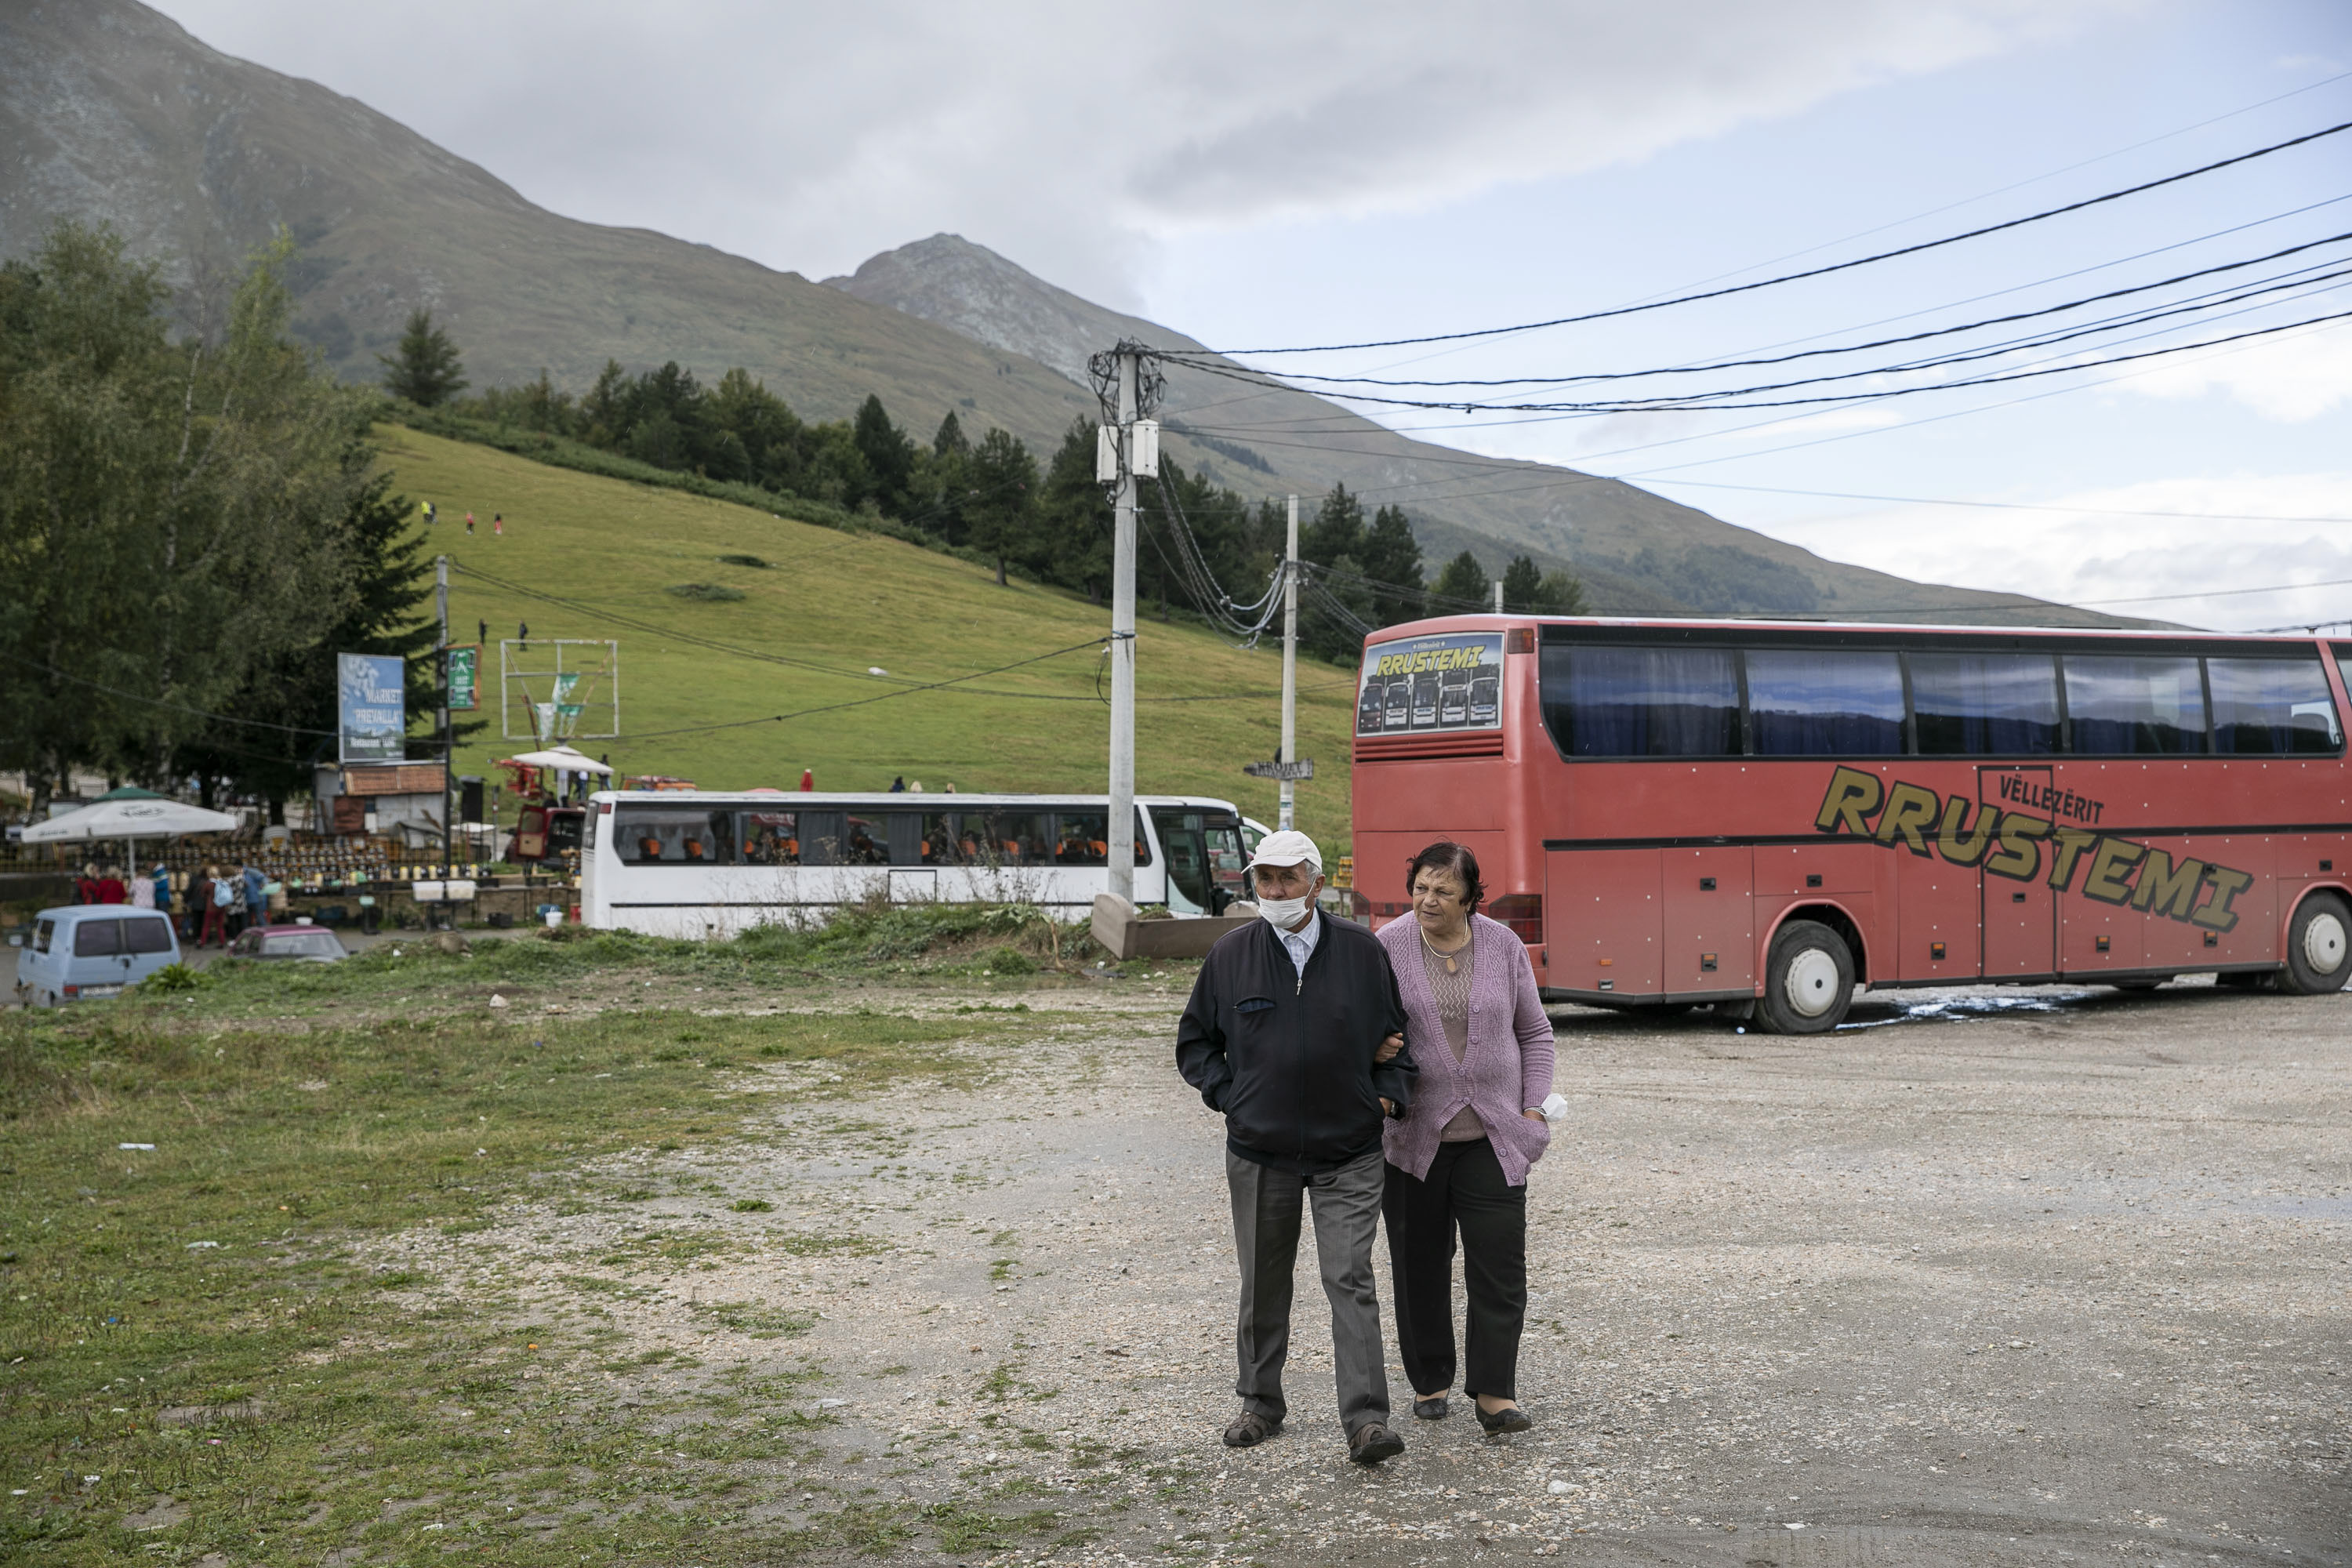 An elderly couple at the Prevalla pass.